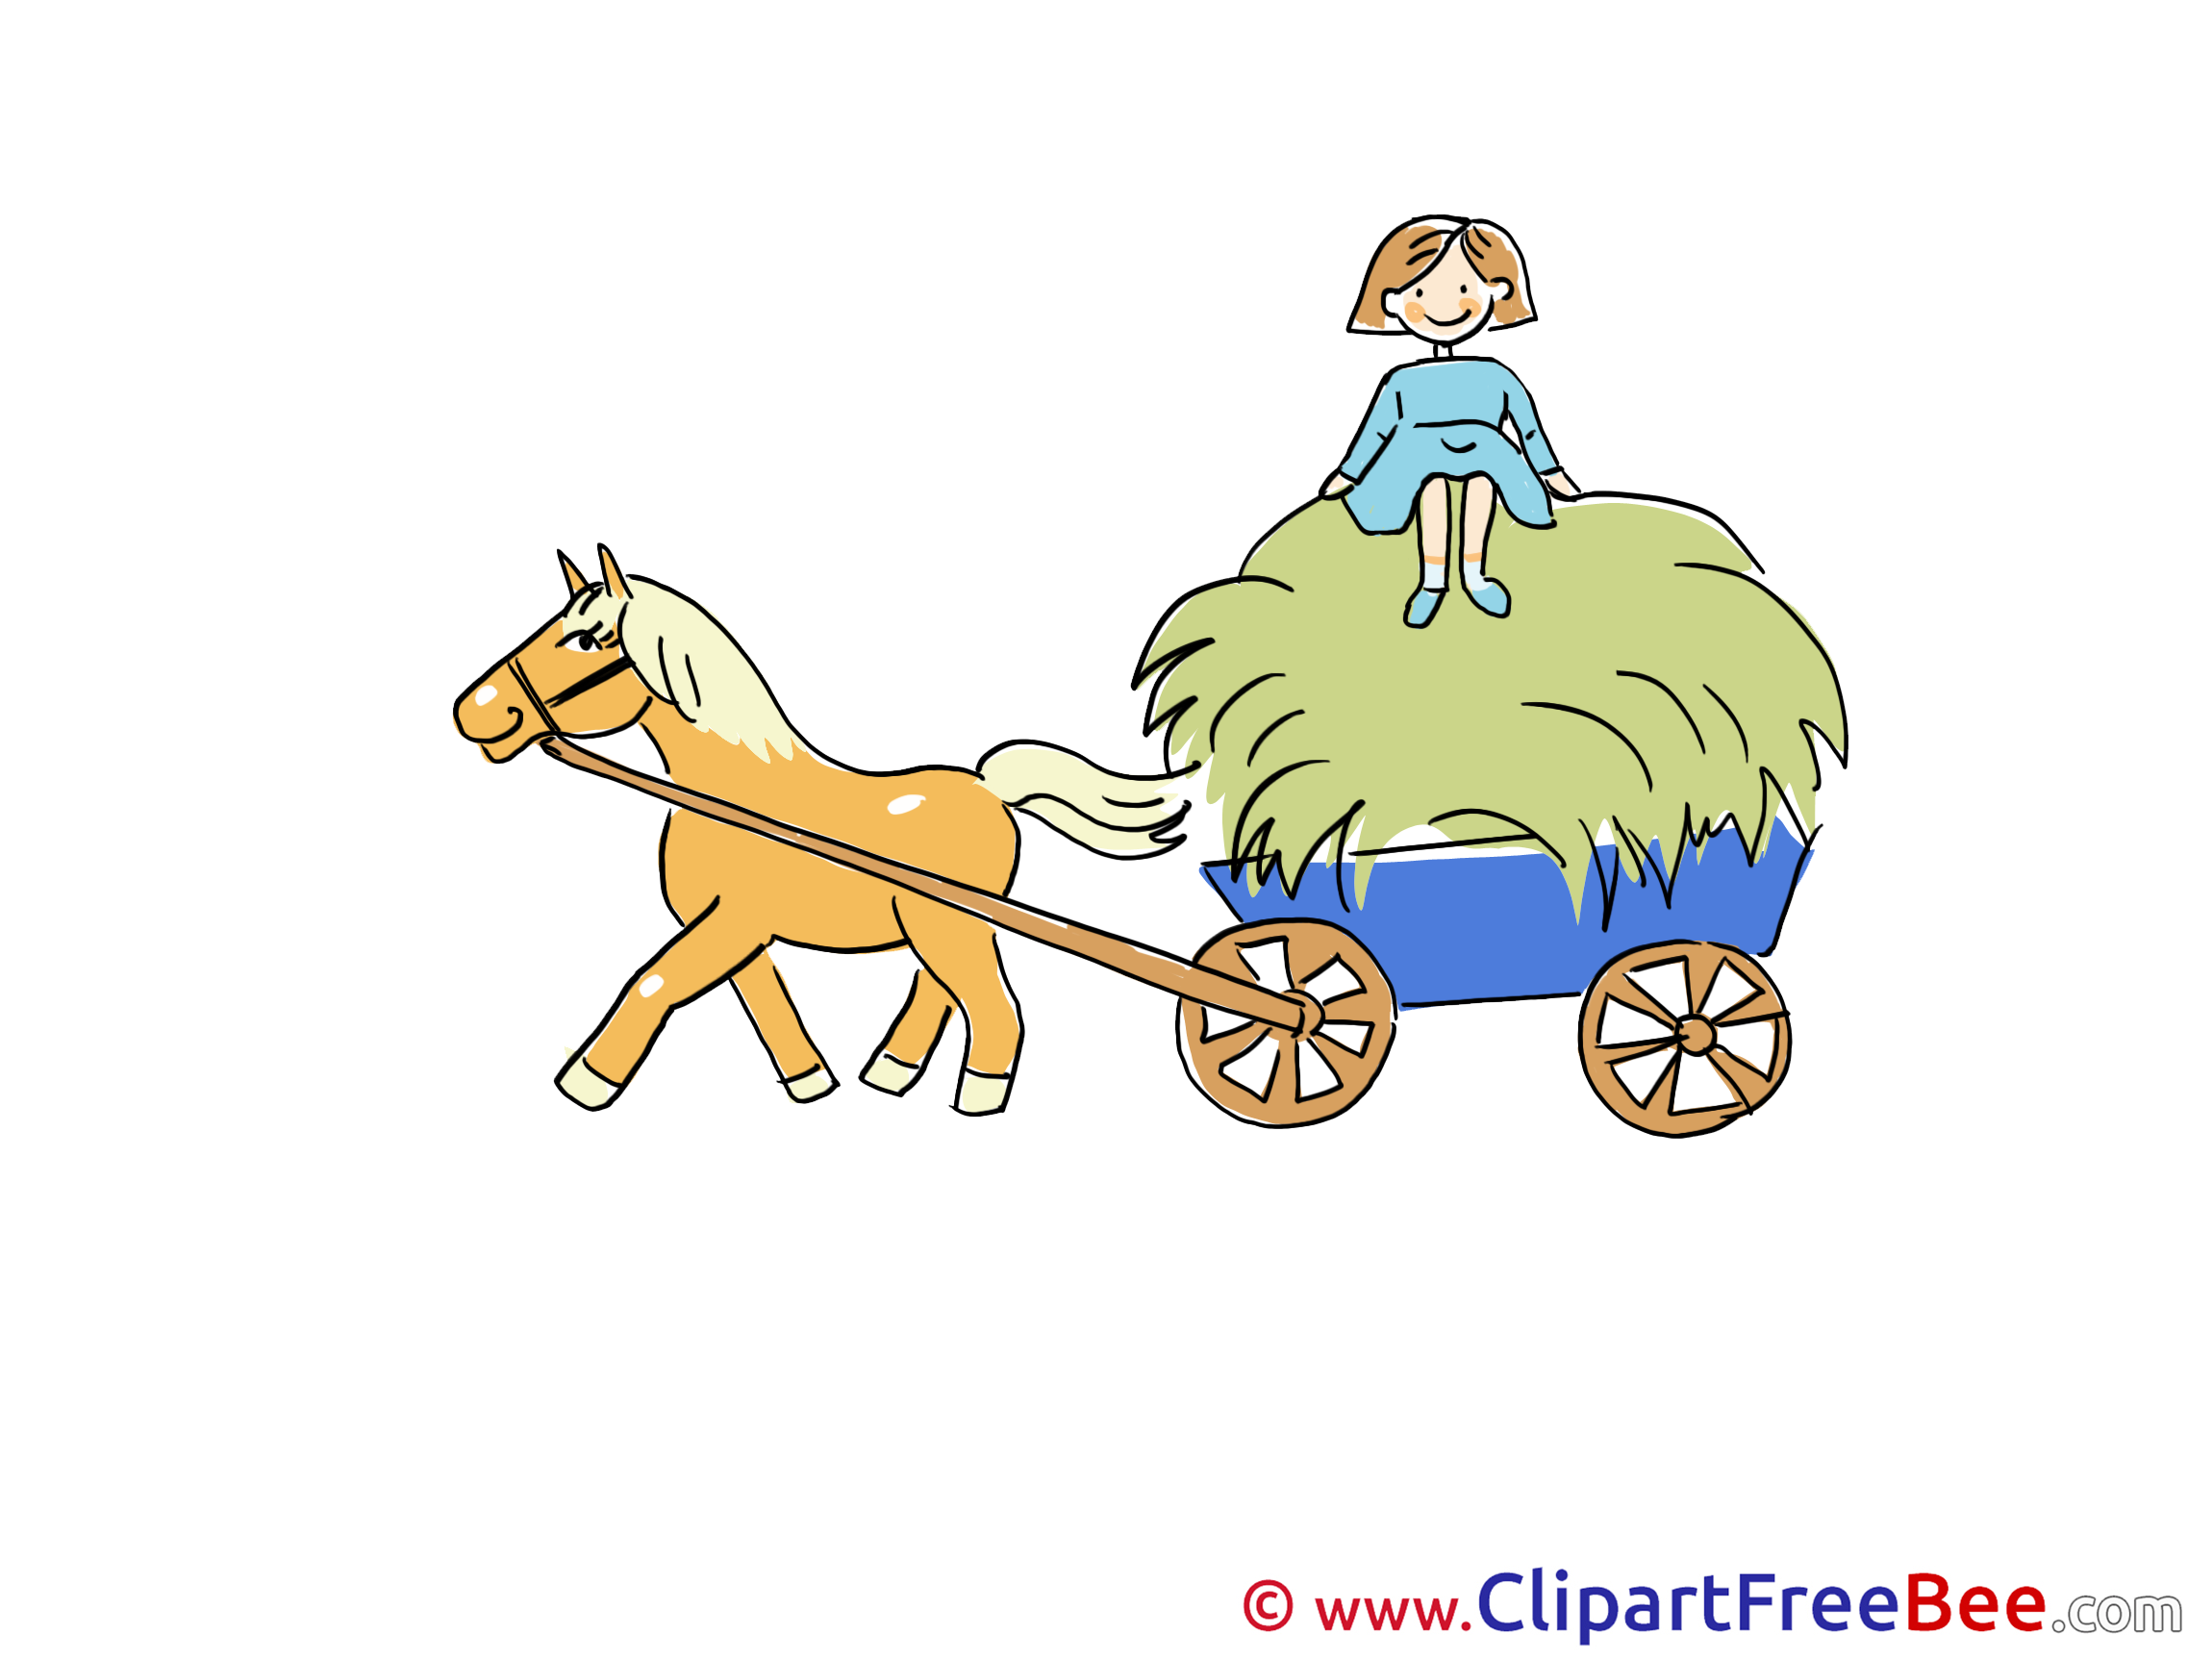 Cart Horse Clipart free Image download